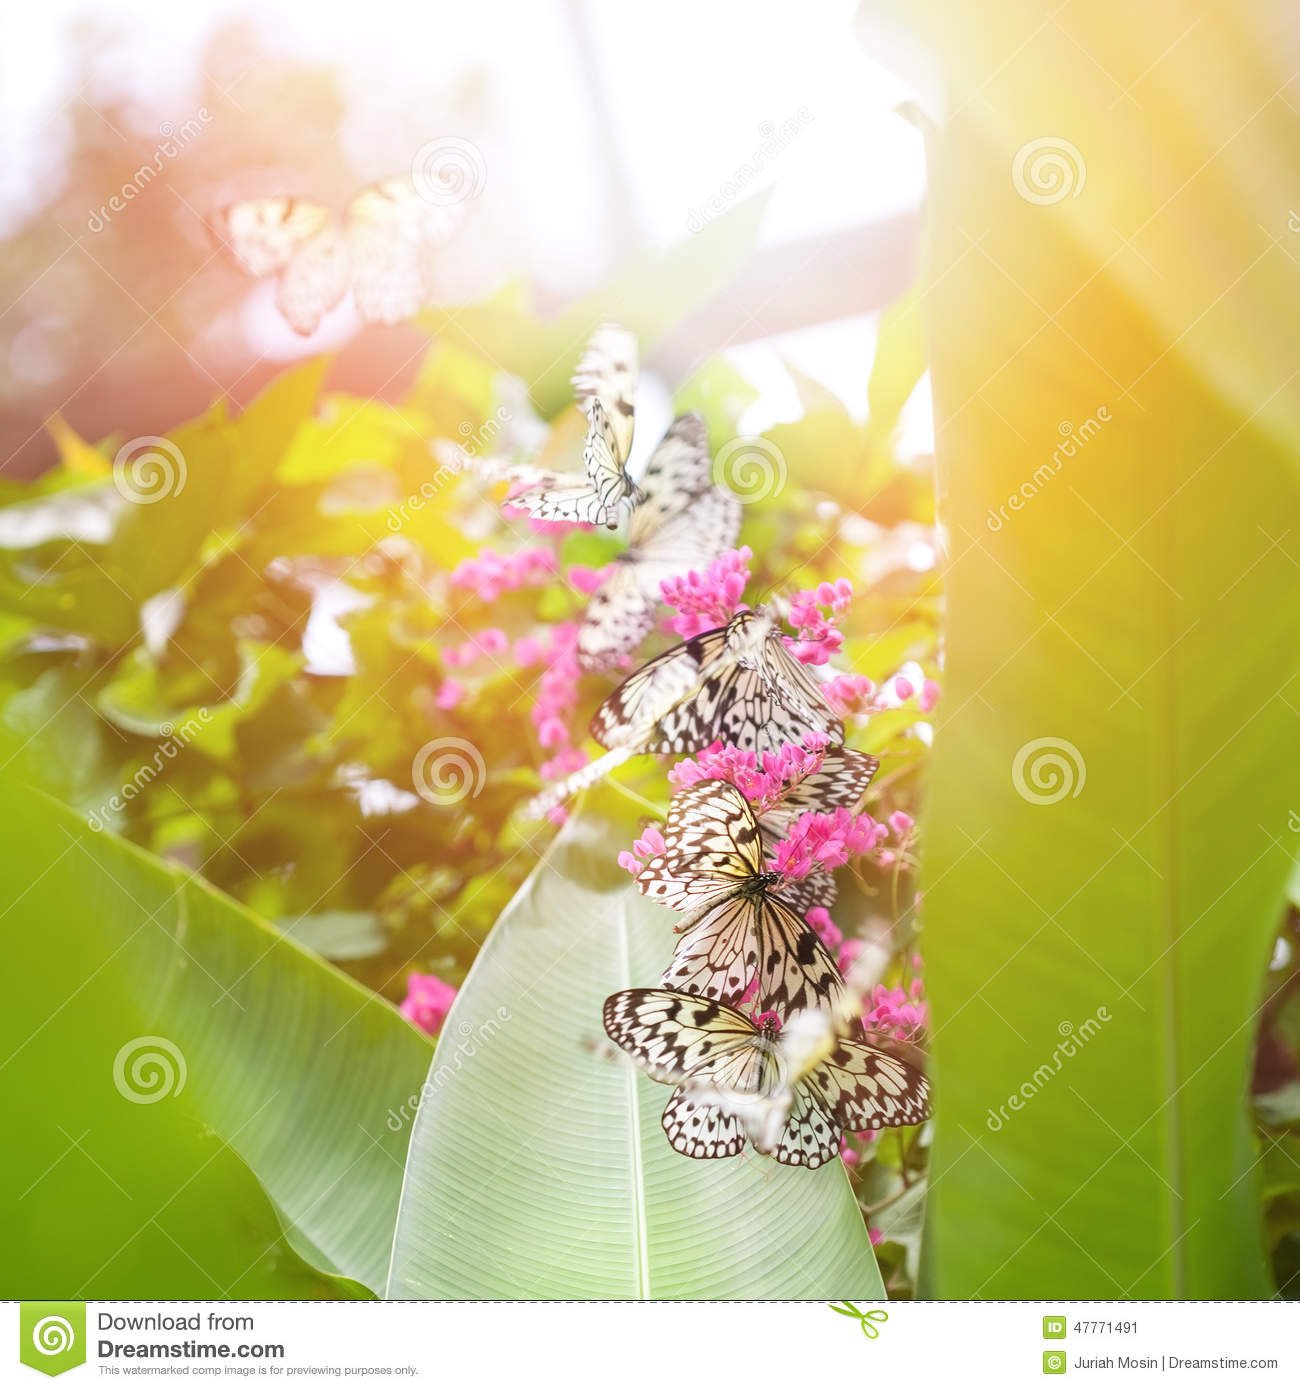 Paper kite butterflies tree nymph collecting nectar from pink download paper kite butterflies tree nymph collecting nectar from pink flowers stock image mightylinksfo